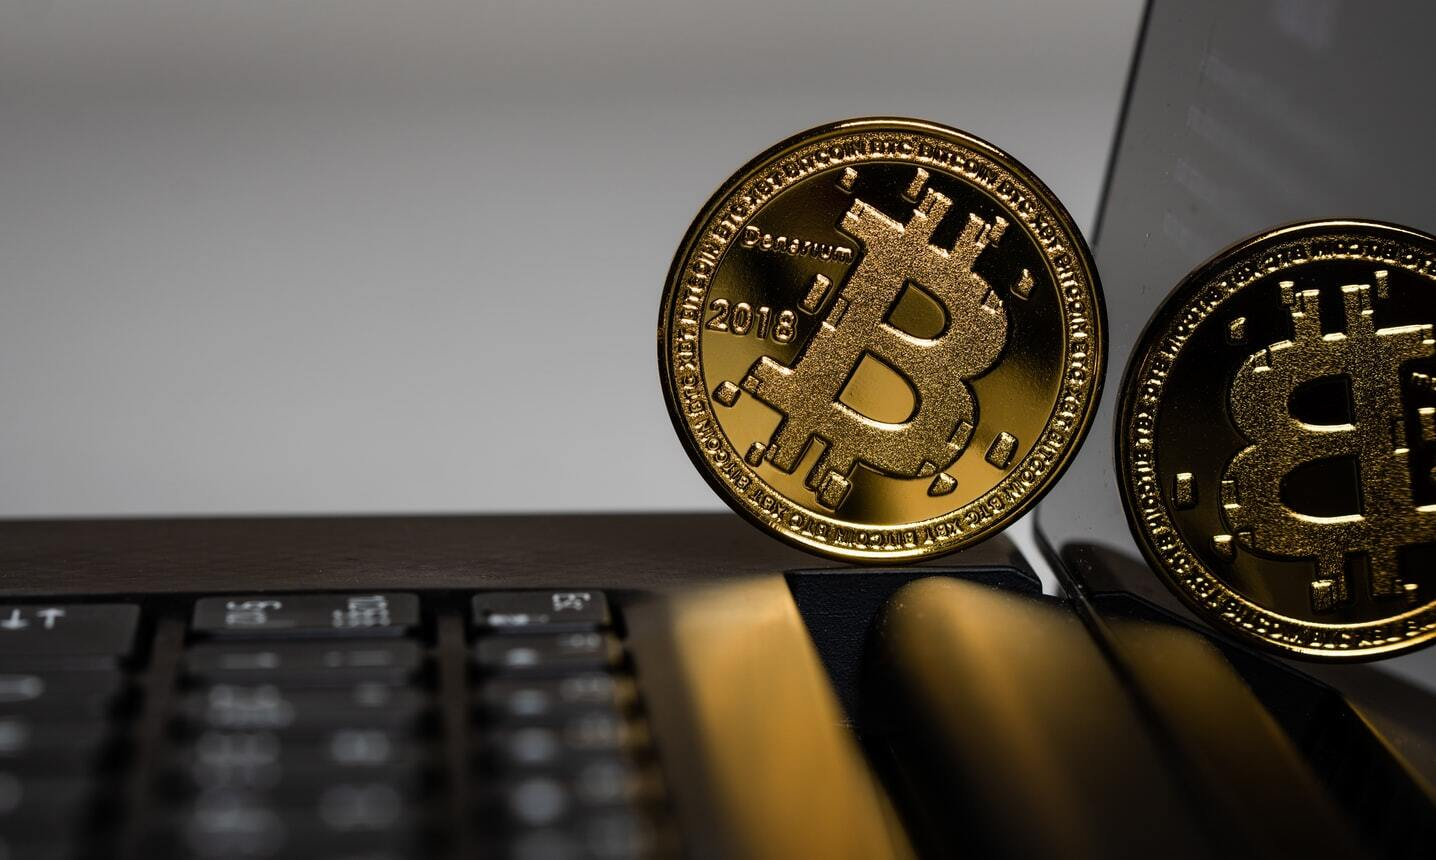 bitcoin-on-laptop-keyboard-in-rotating-position-paypal-have-post